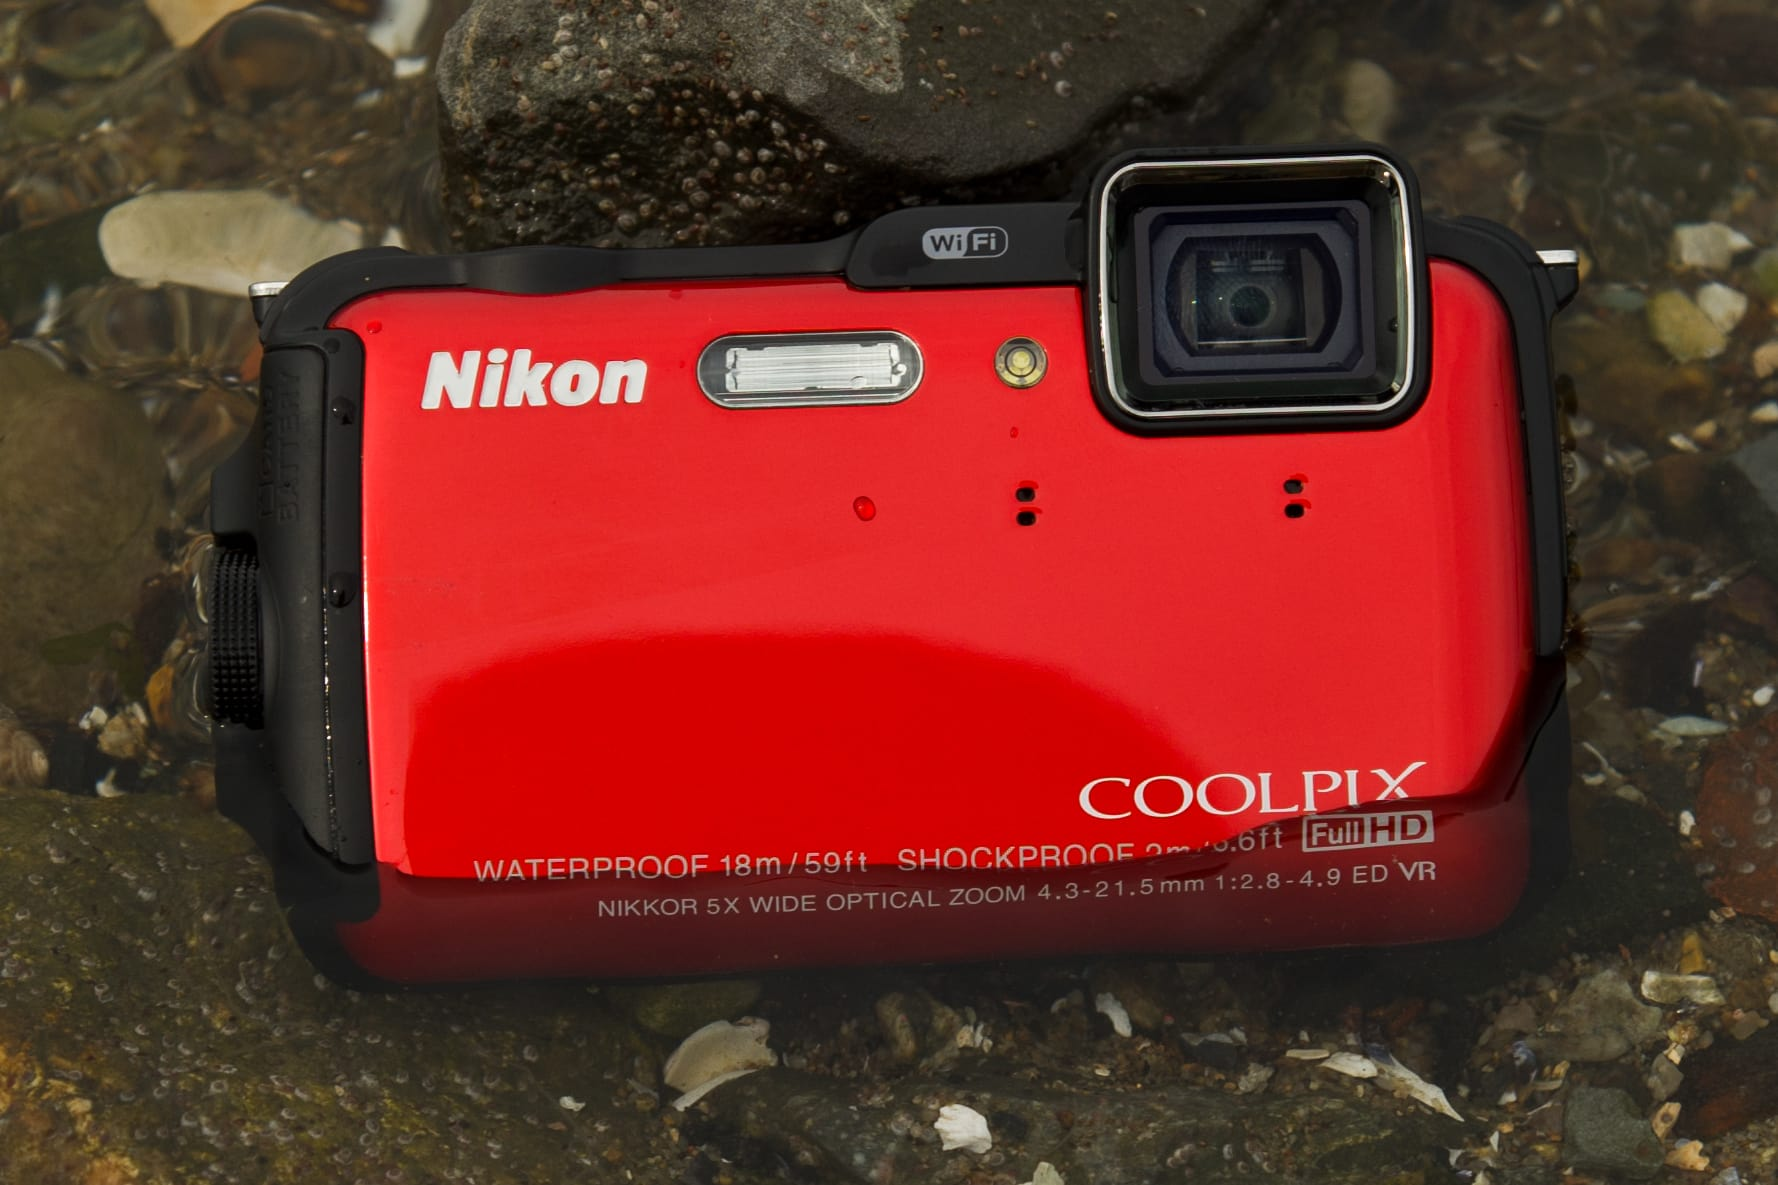 A shot of the Nikon Coolpix AW120 in the wild.